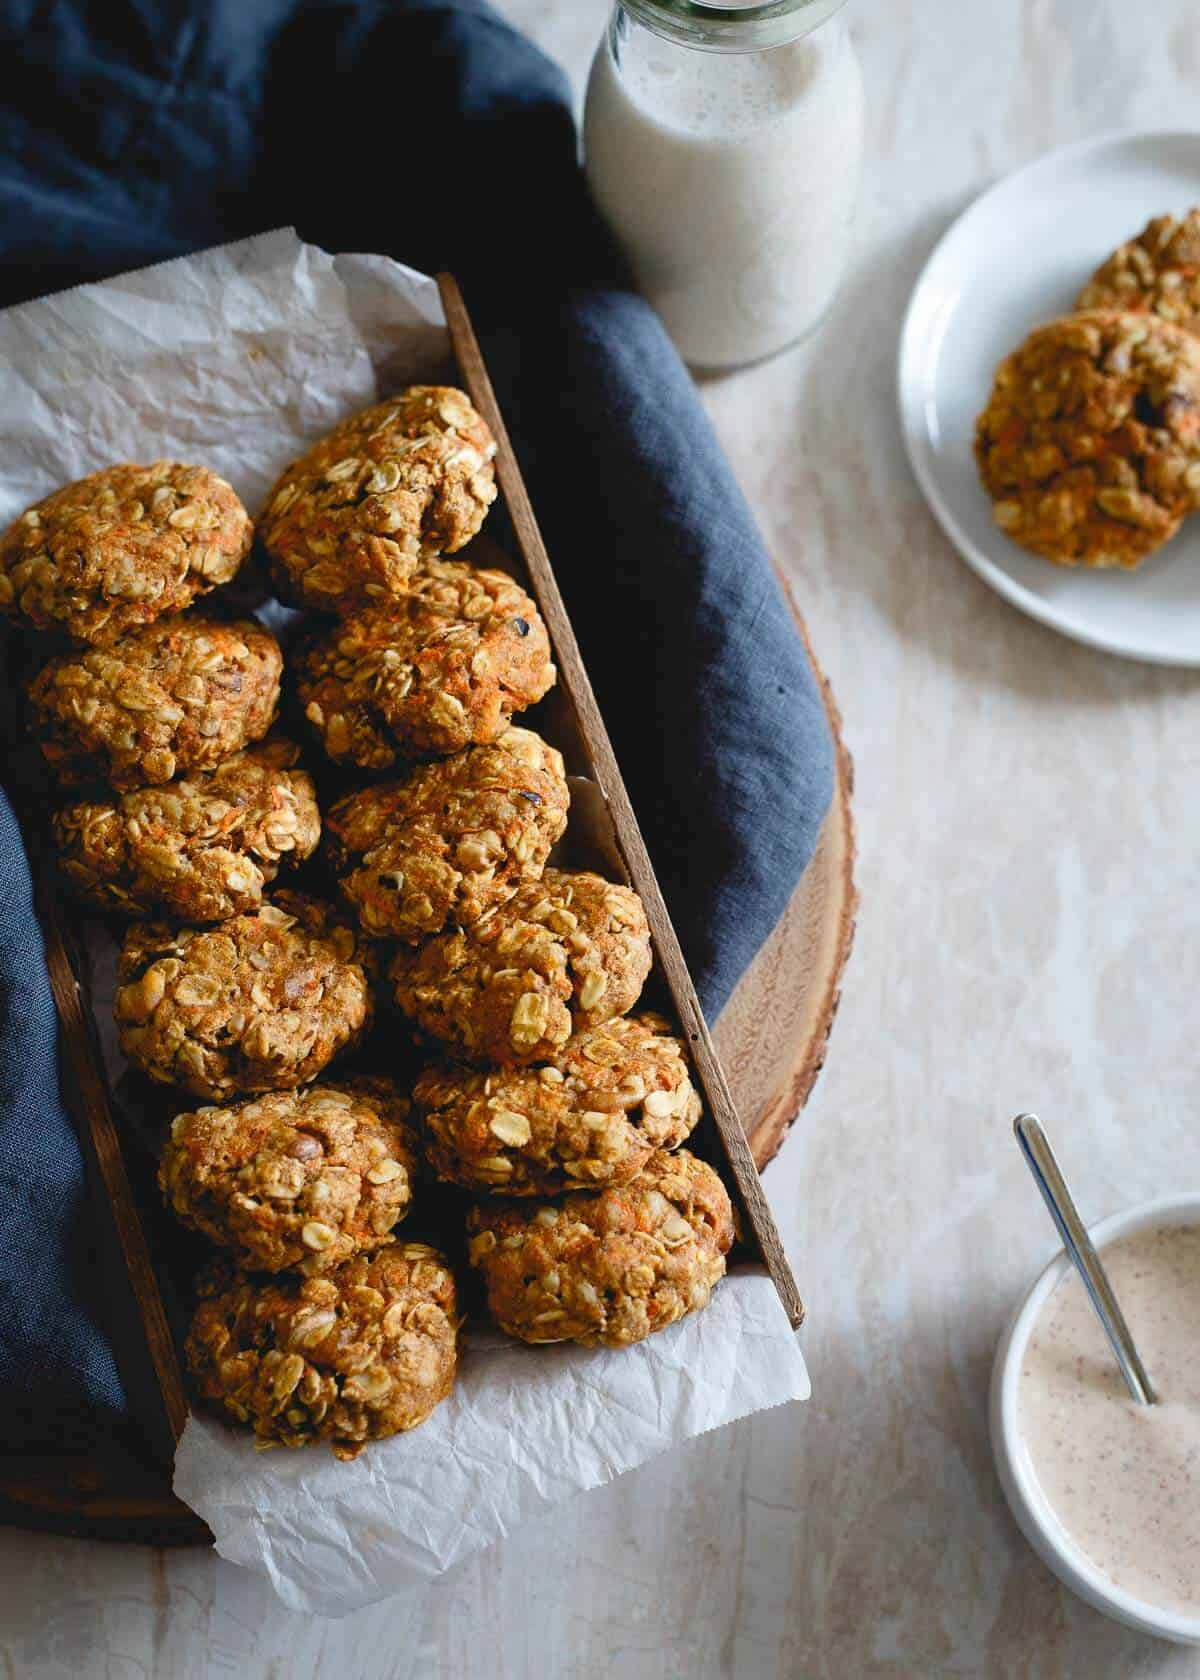 These healthy carrot cake cookies made with oats and whole wheat flour are packed with raisins, walnuts, lemon zest and ginger. Drizzle them with the optional almond butter cream cheese topping for a true creamy carrot cake like bite. No added sugar, no butter, still completely delicious and guilt-free.